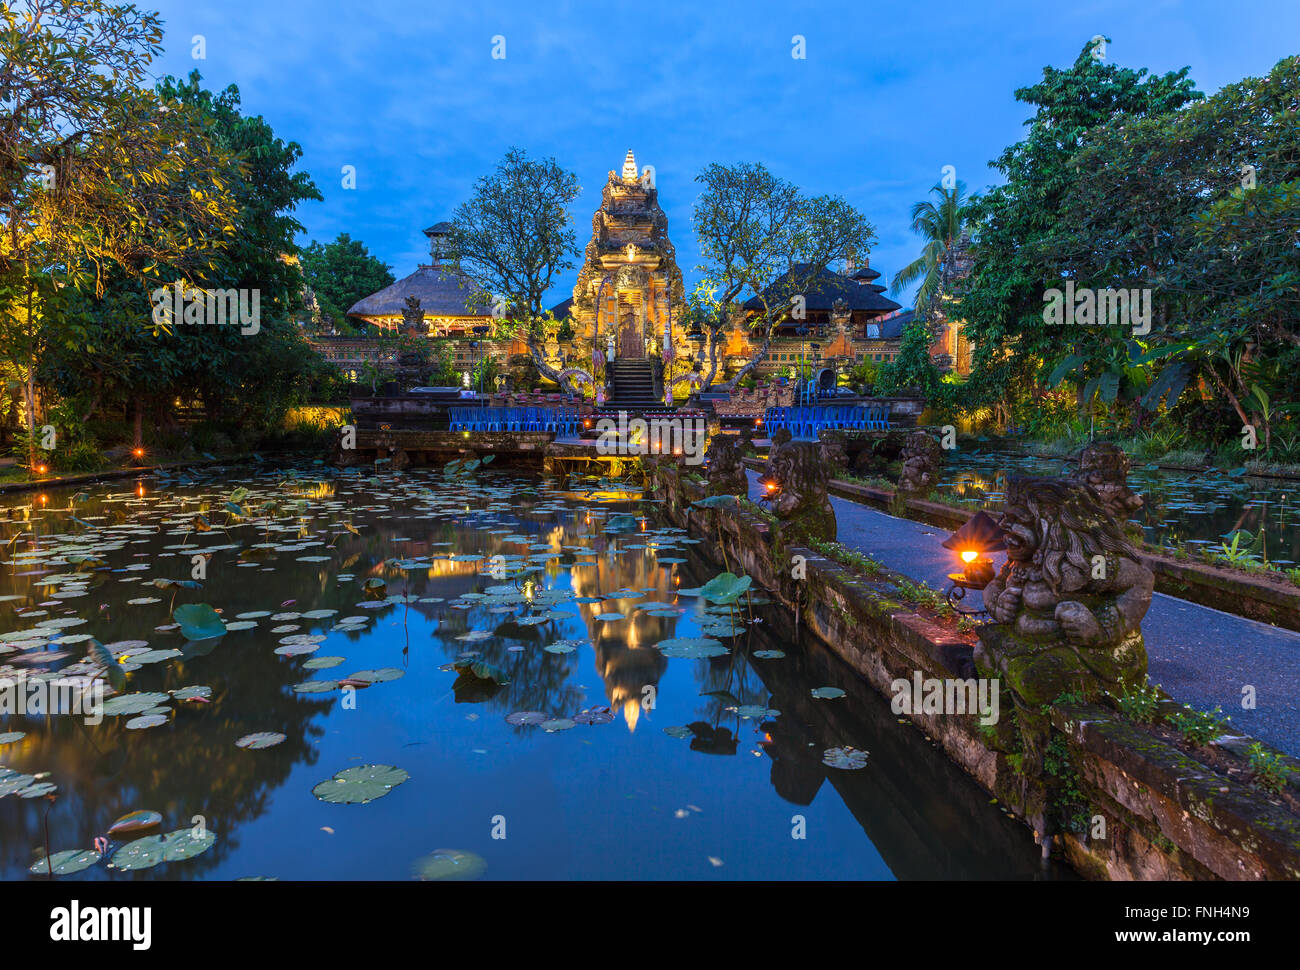 Pura Saraswati Temple with beatiful lotus pond at dusk before the dancing show, Ubud, Bali, Indonesia - Stock Image